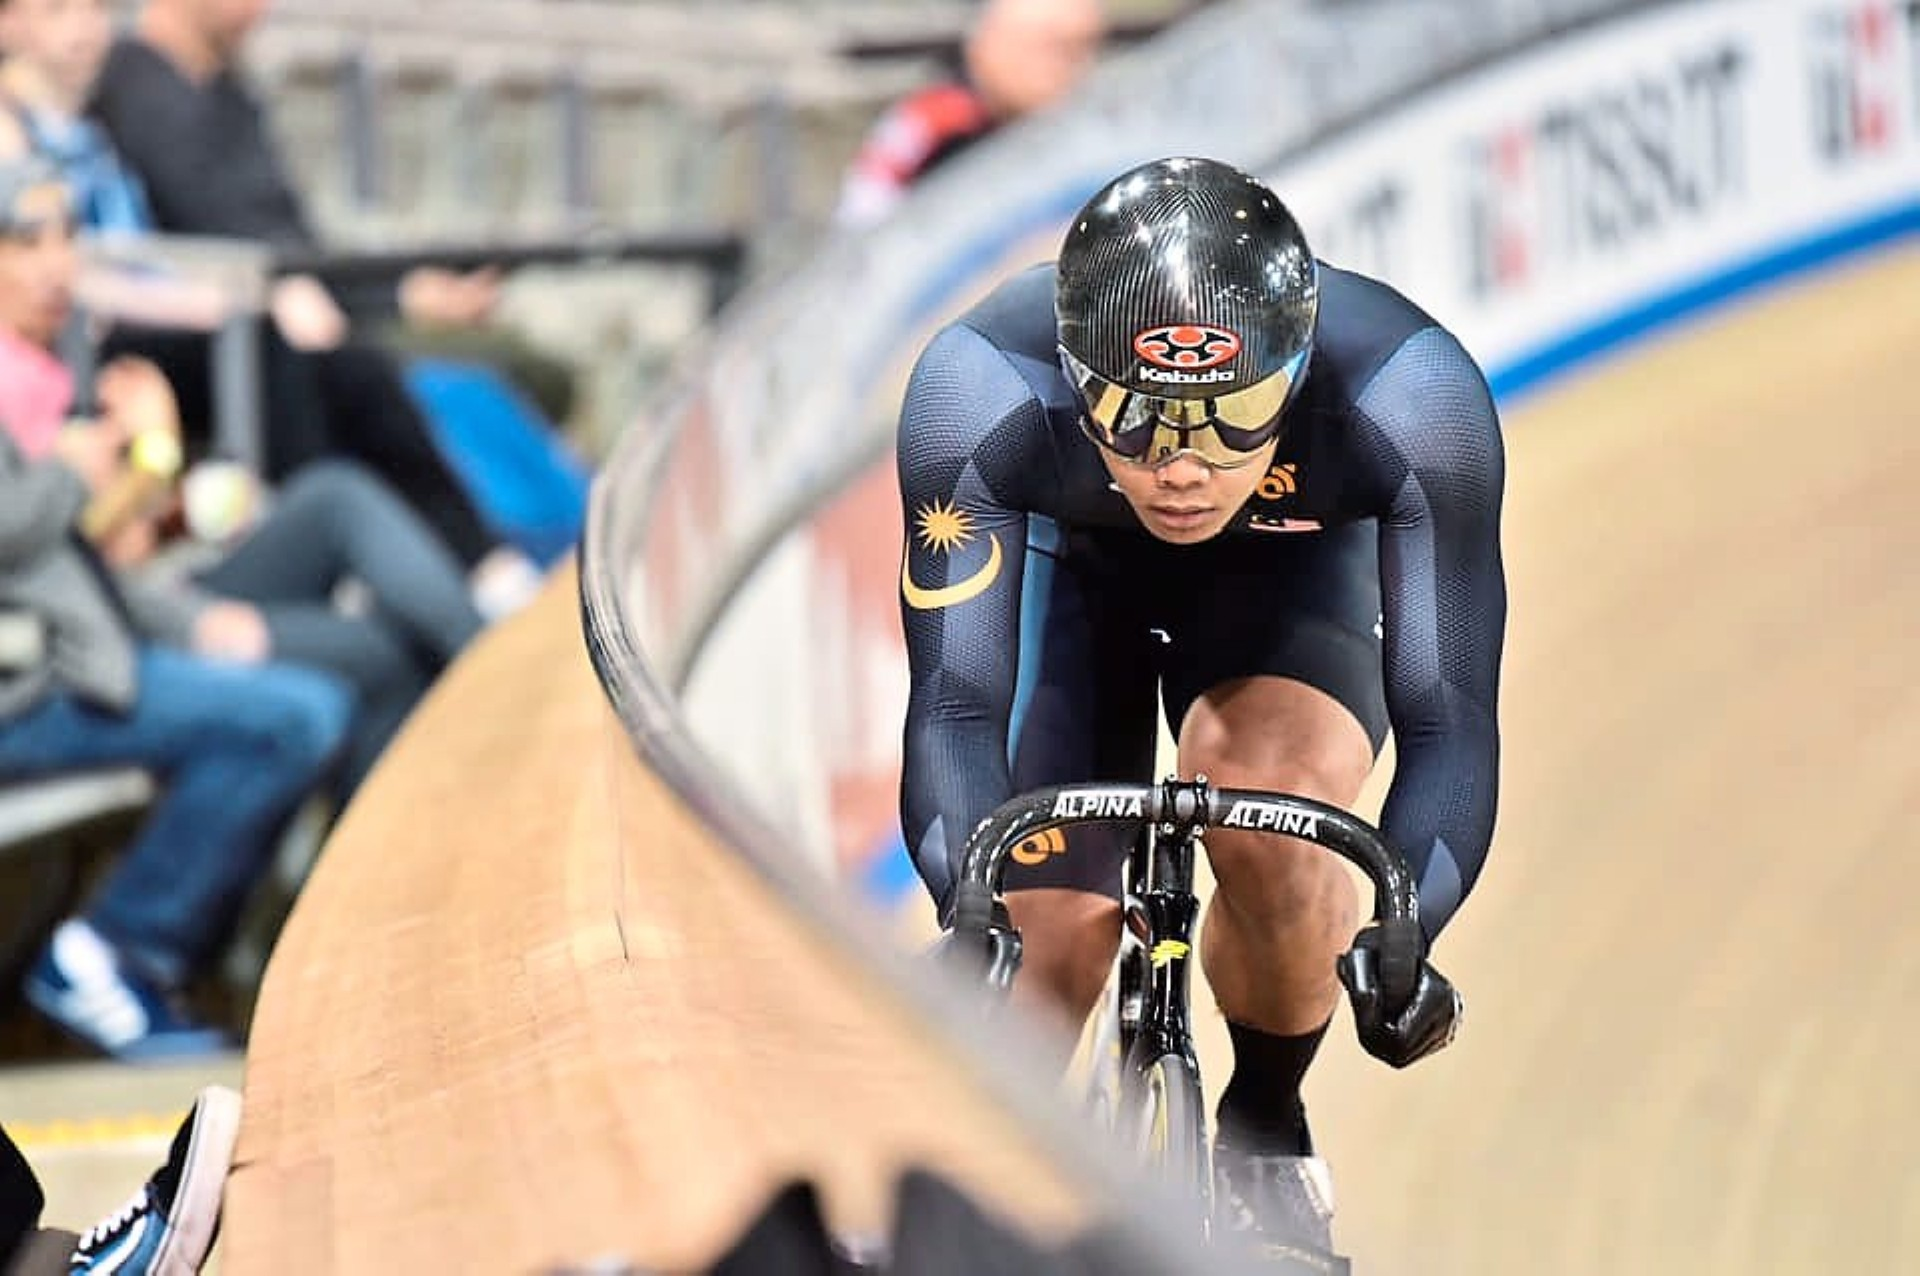 Poor outing: Malaysia's Mohd Shah Firdaus Sahrom, who won a silver in the keirin event at the Asian Track Cycling Championships in January, ended up last in the same event at the same meet in South Korea.